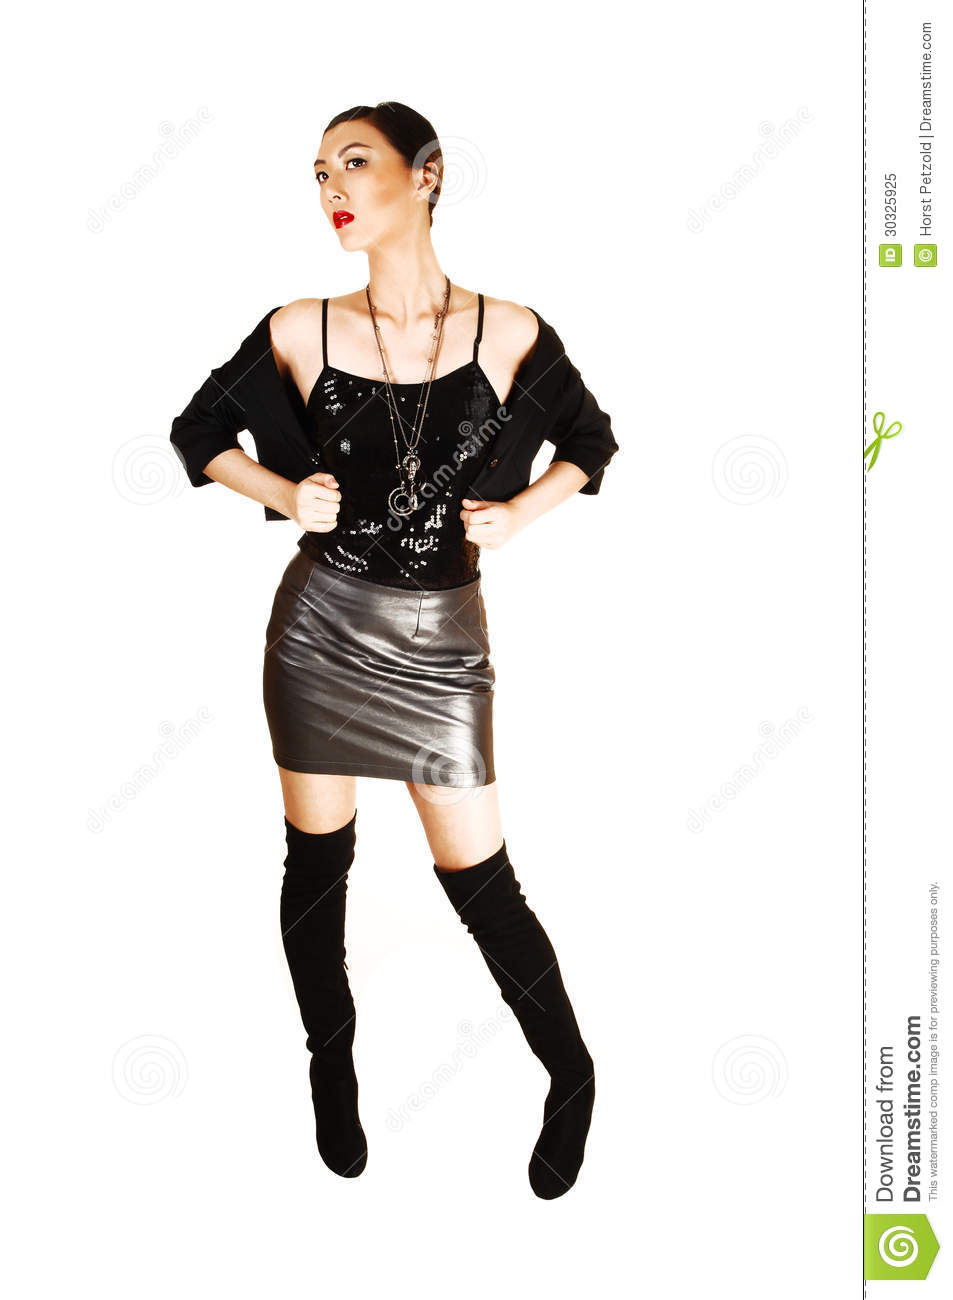 Girl In Leather Skirt Stock Image Image Of Hair, Black - 30325925-3636